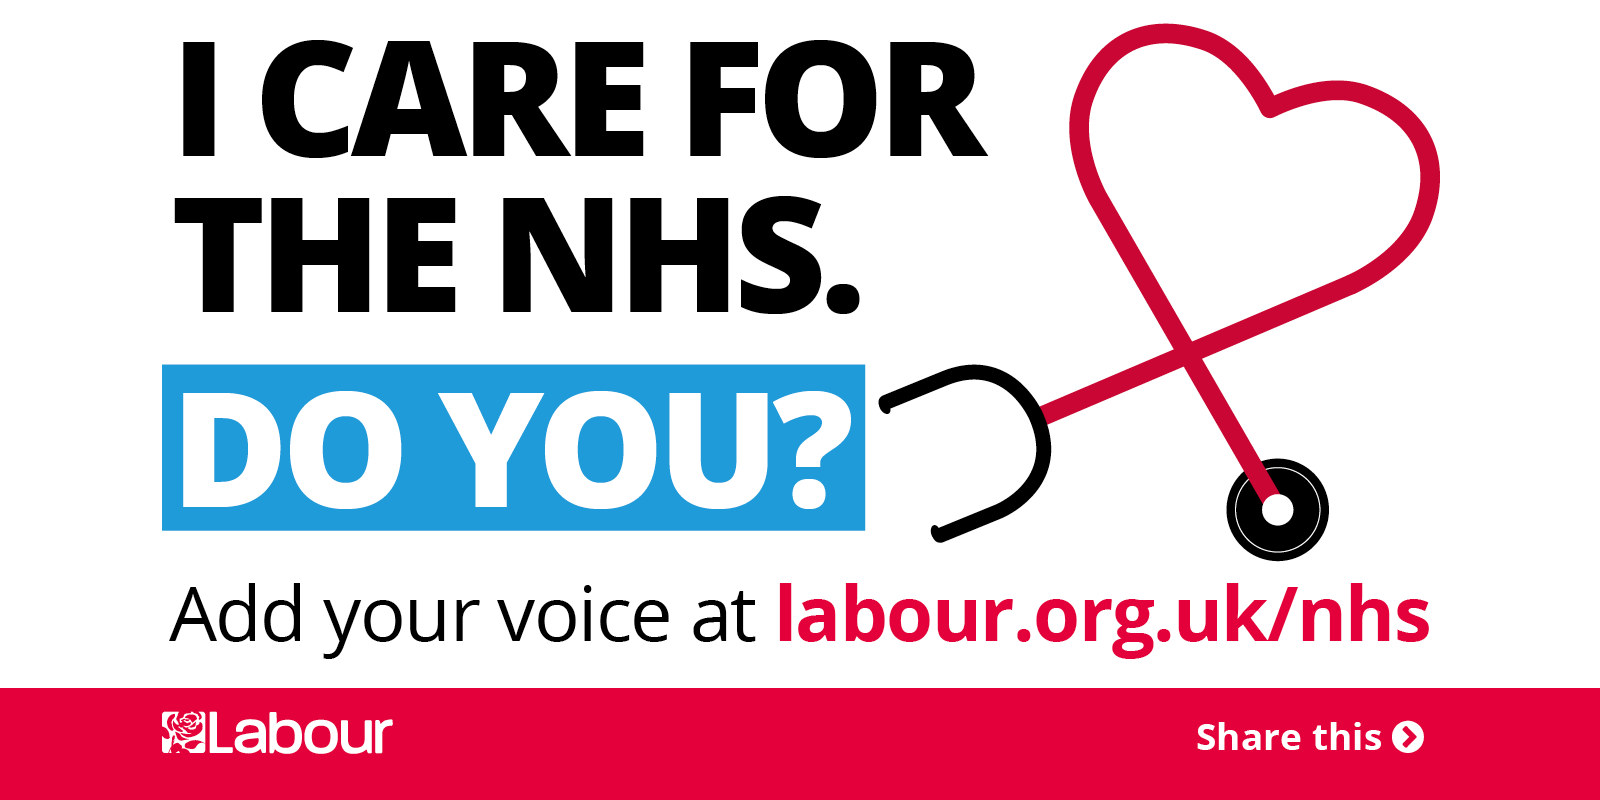 8834_16_I_Care_for_the_NHS_-_pledge_graphic_v2.png